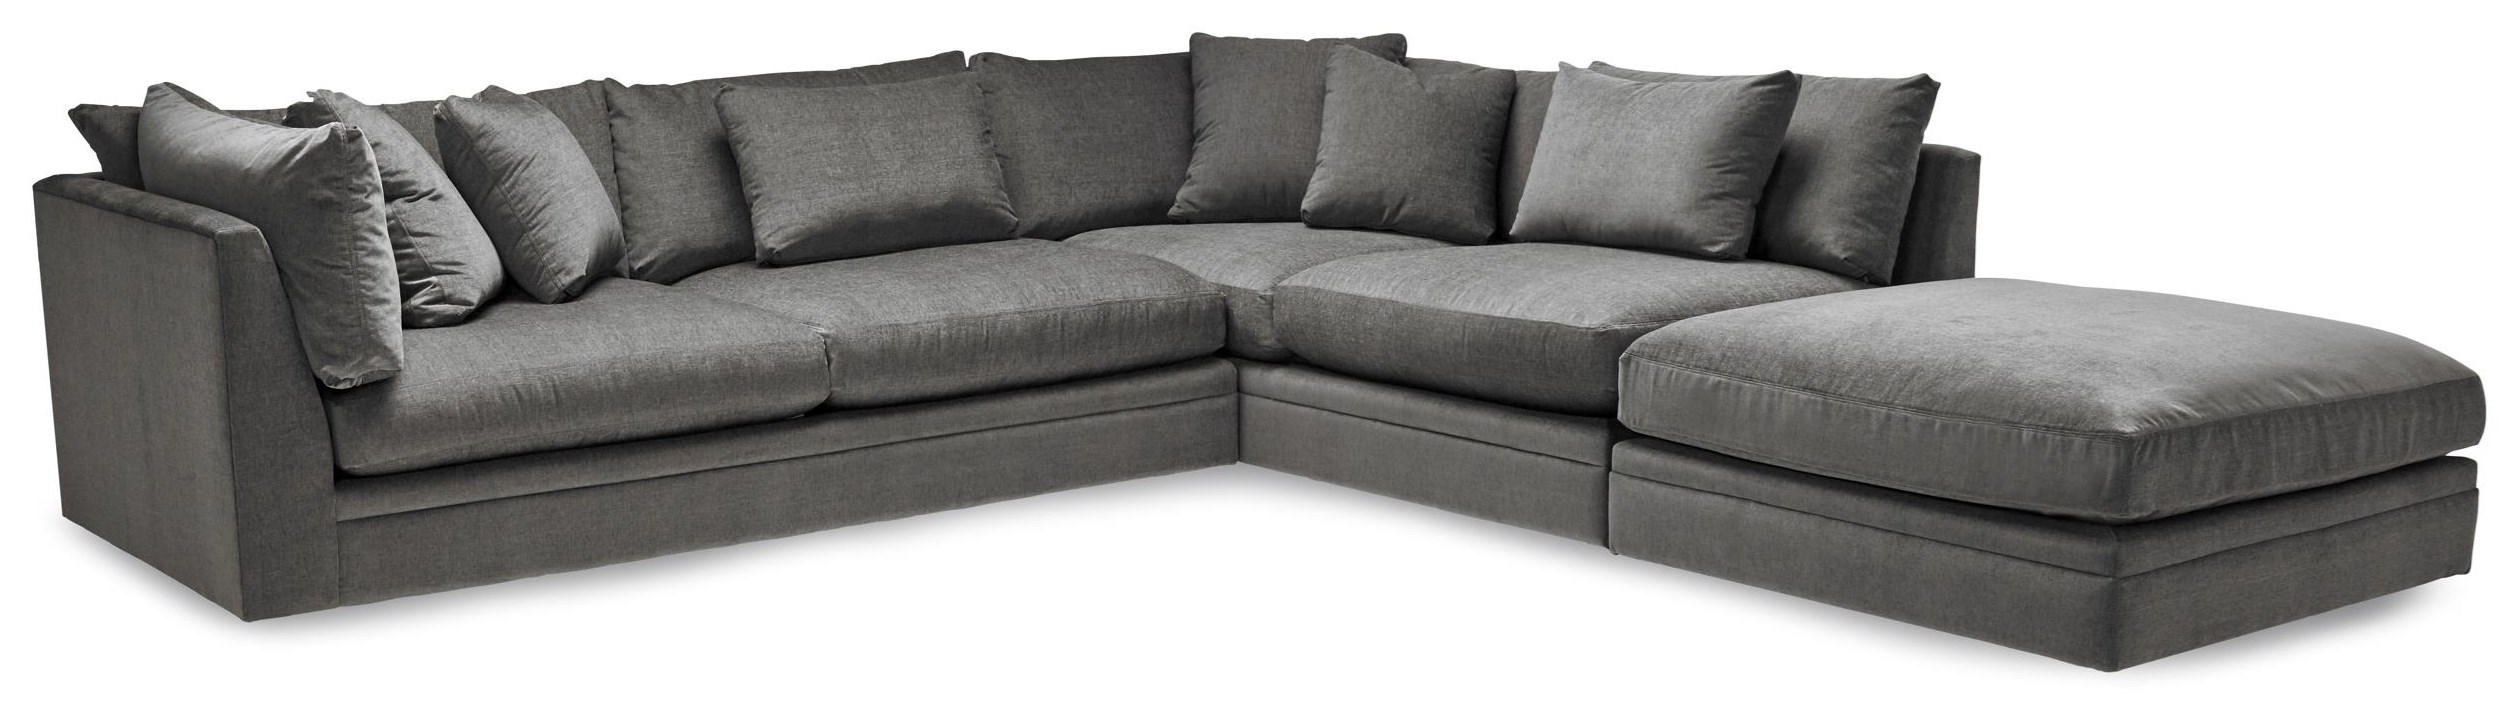 1414 2 Pc sectional by Lewis Home at Stoney Creek Furniture